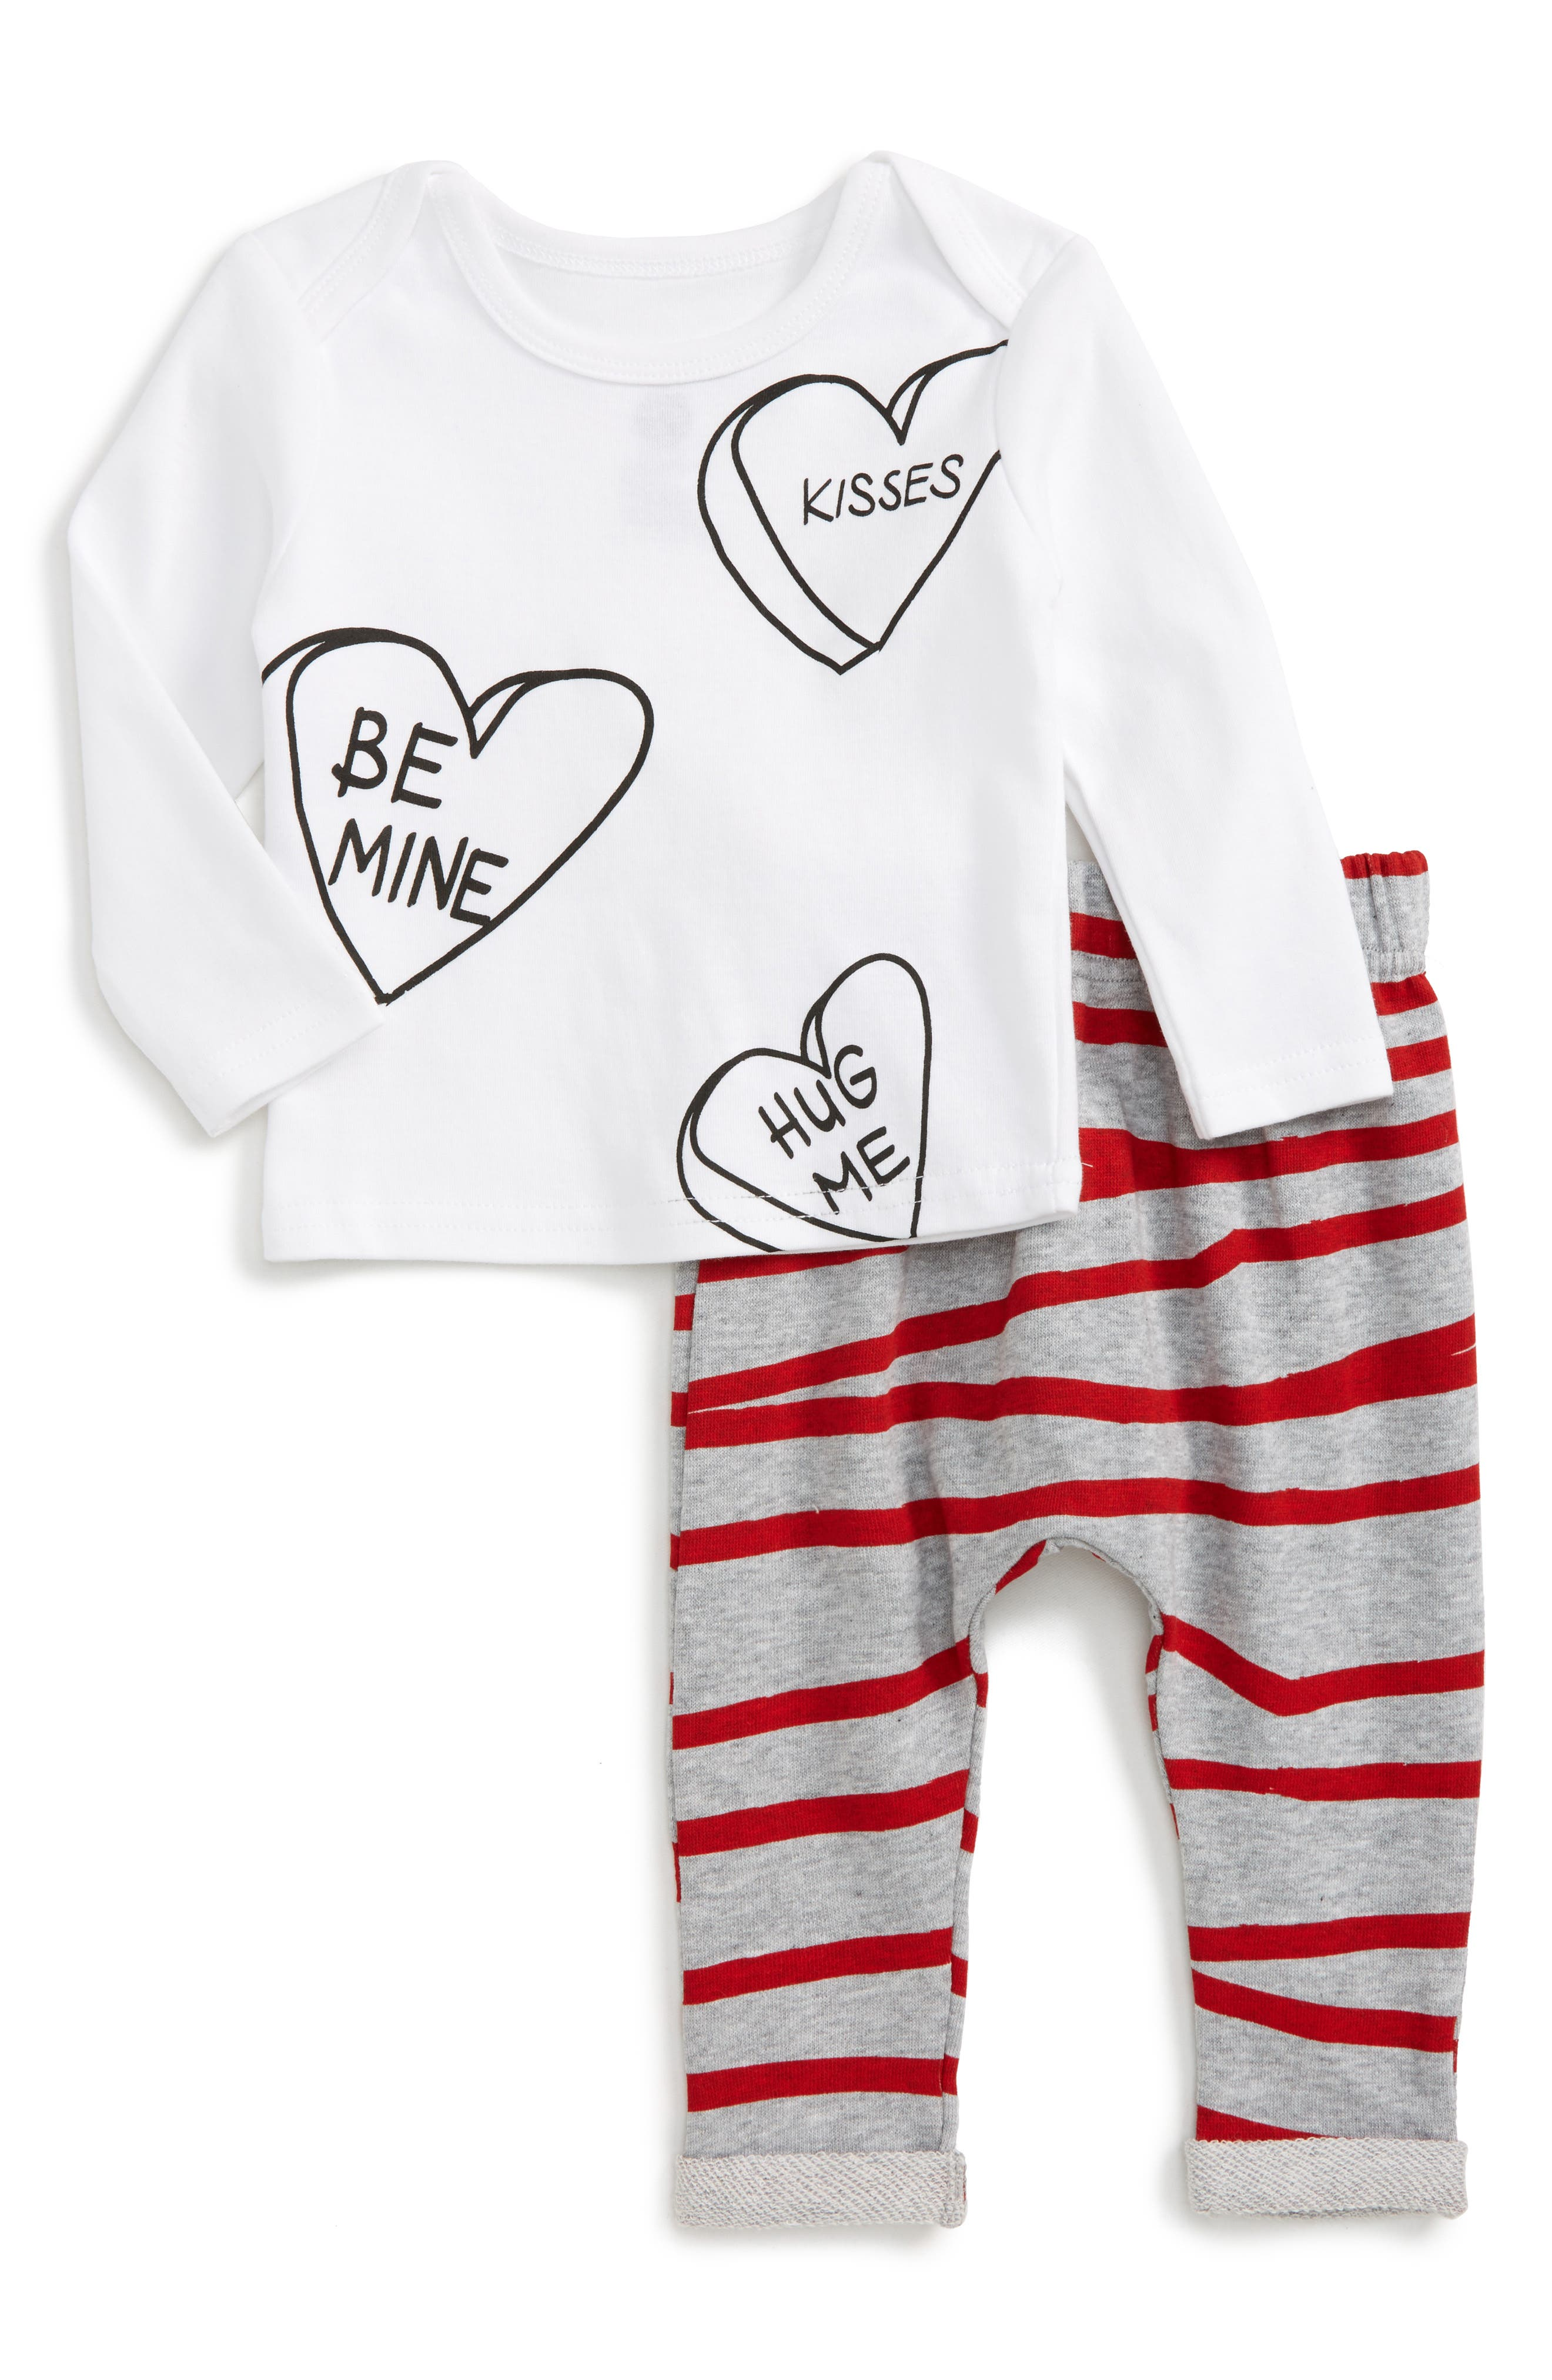 Alternate Image 1 Selected - SOOKIbaby Be Mine Tee & Stripe Sweatpants Set (Baby Girls)